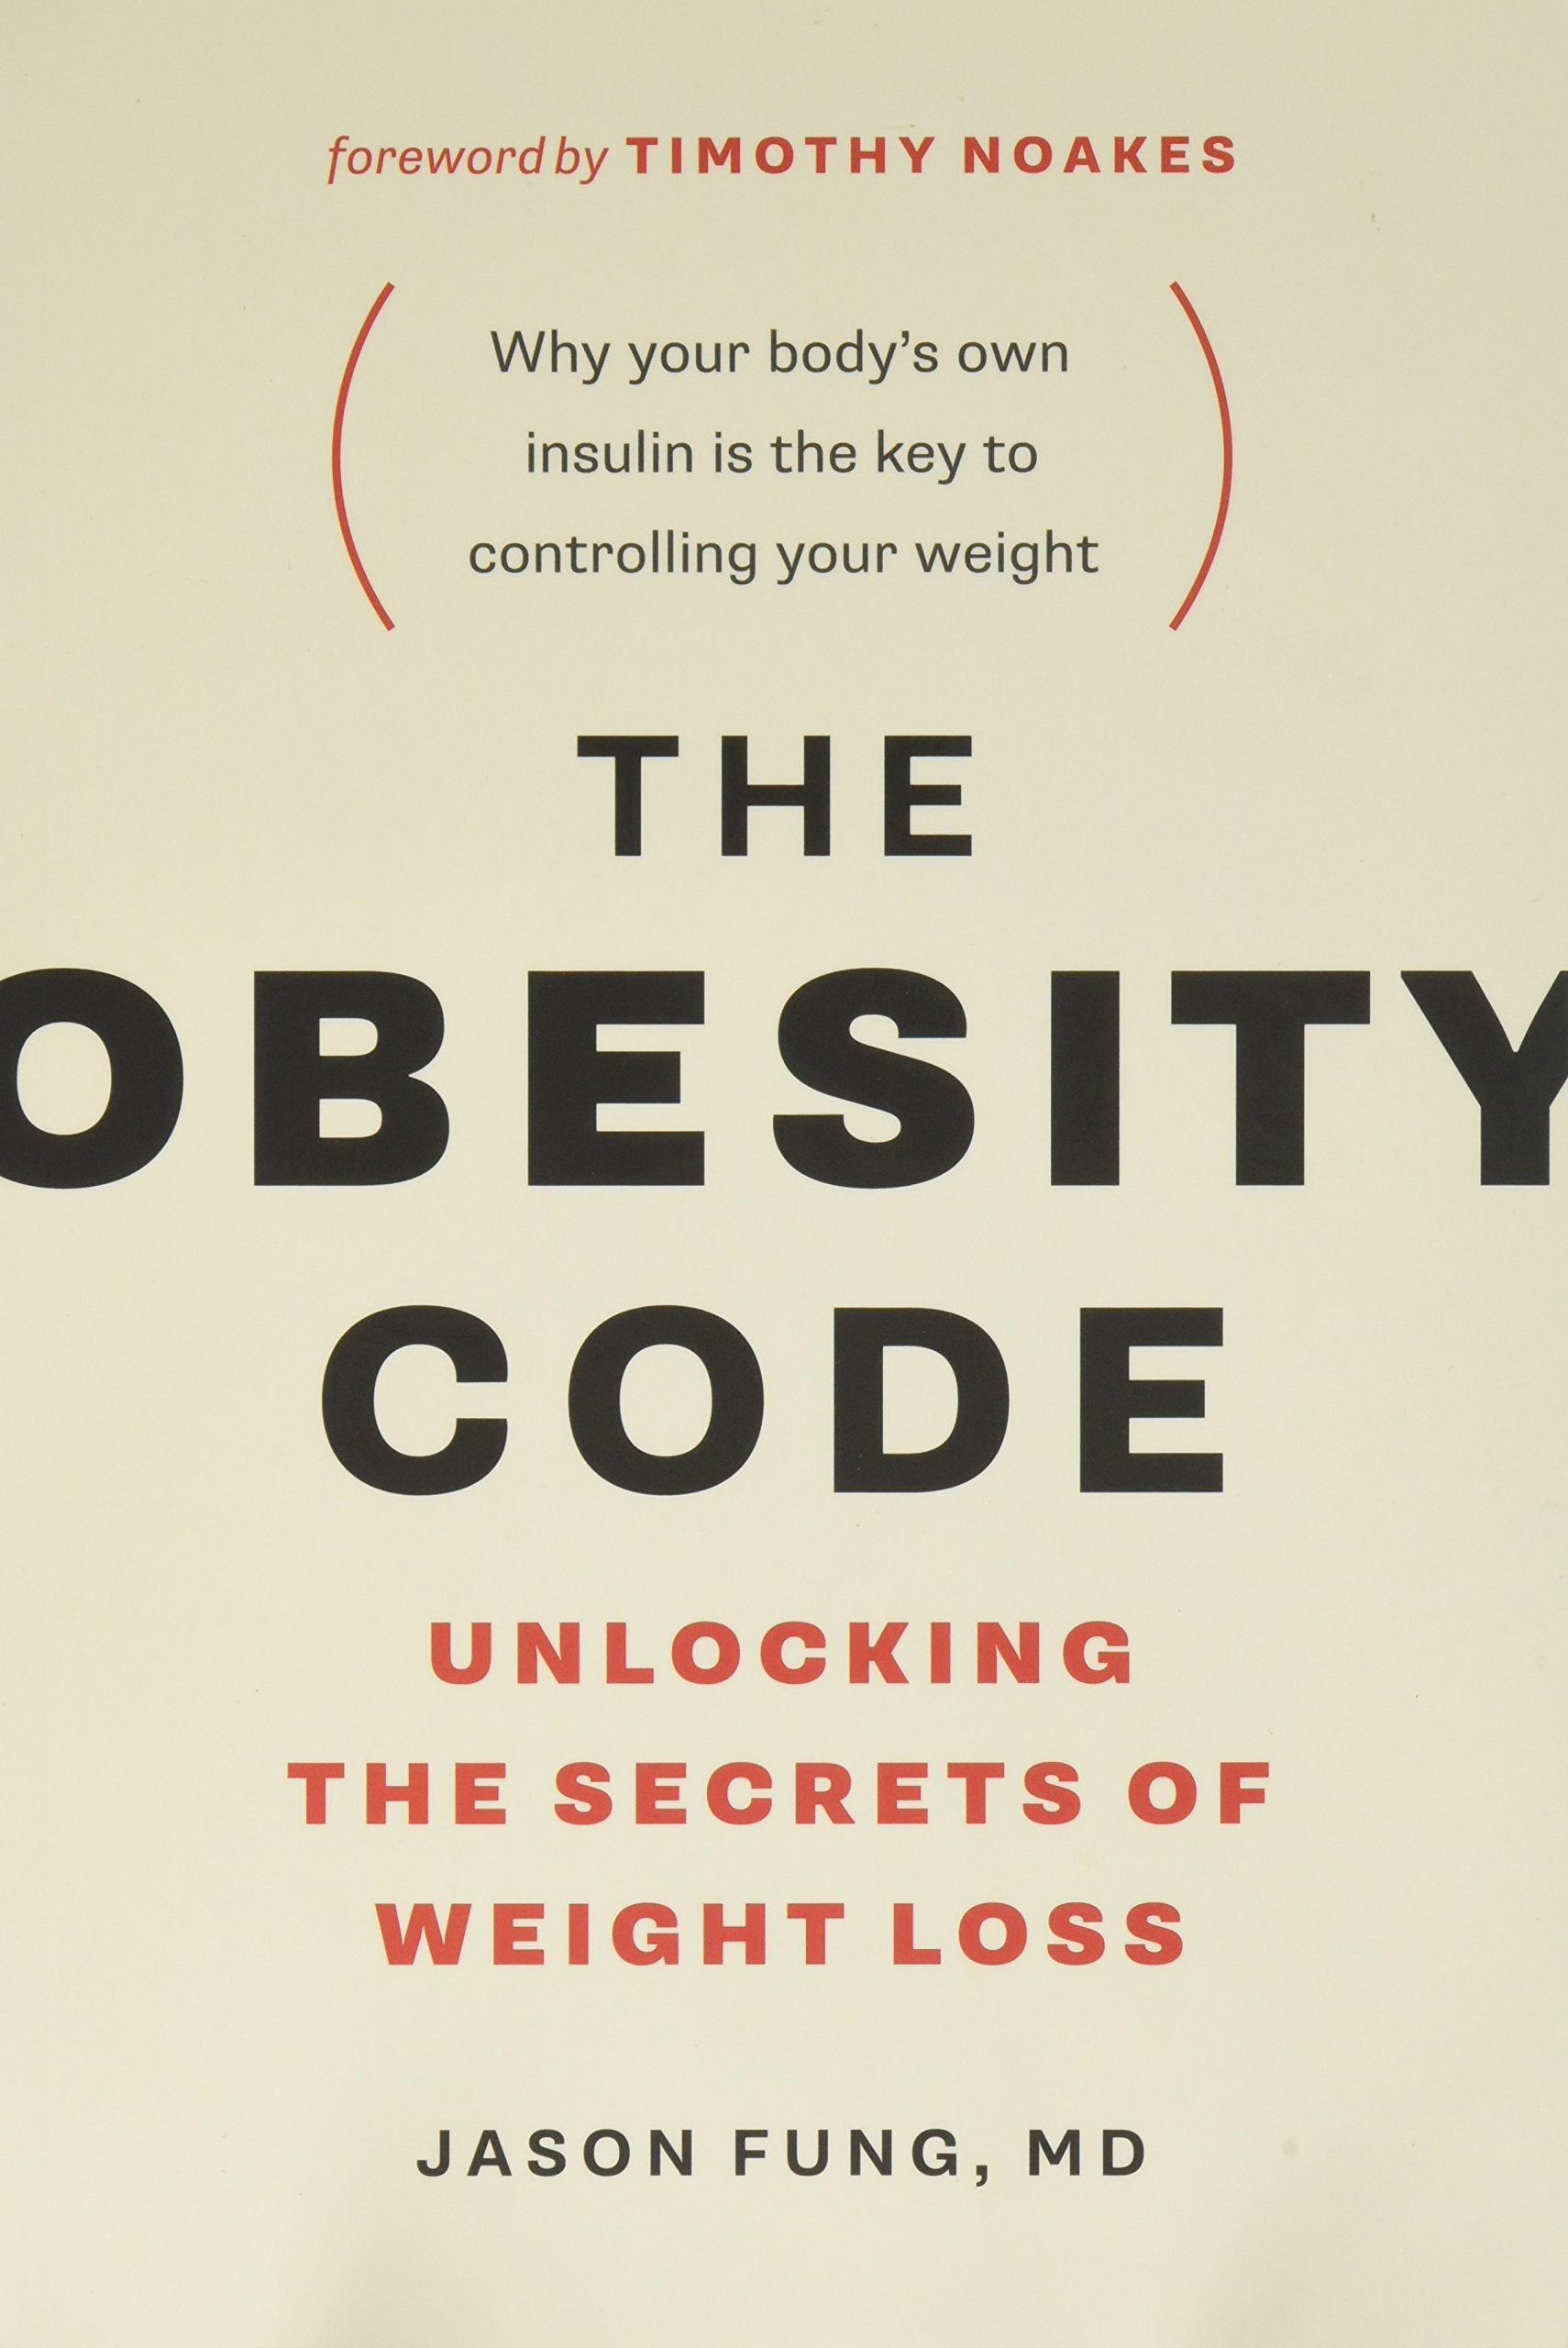 81OMW3oA+sL - The Obesity Code: Unlocking the Secrets of Weight Loss